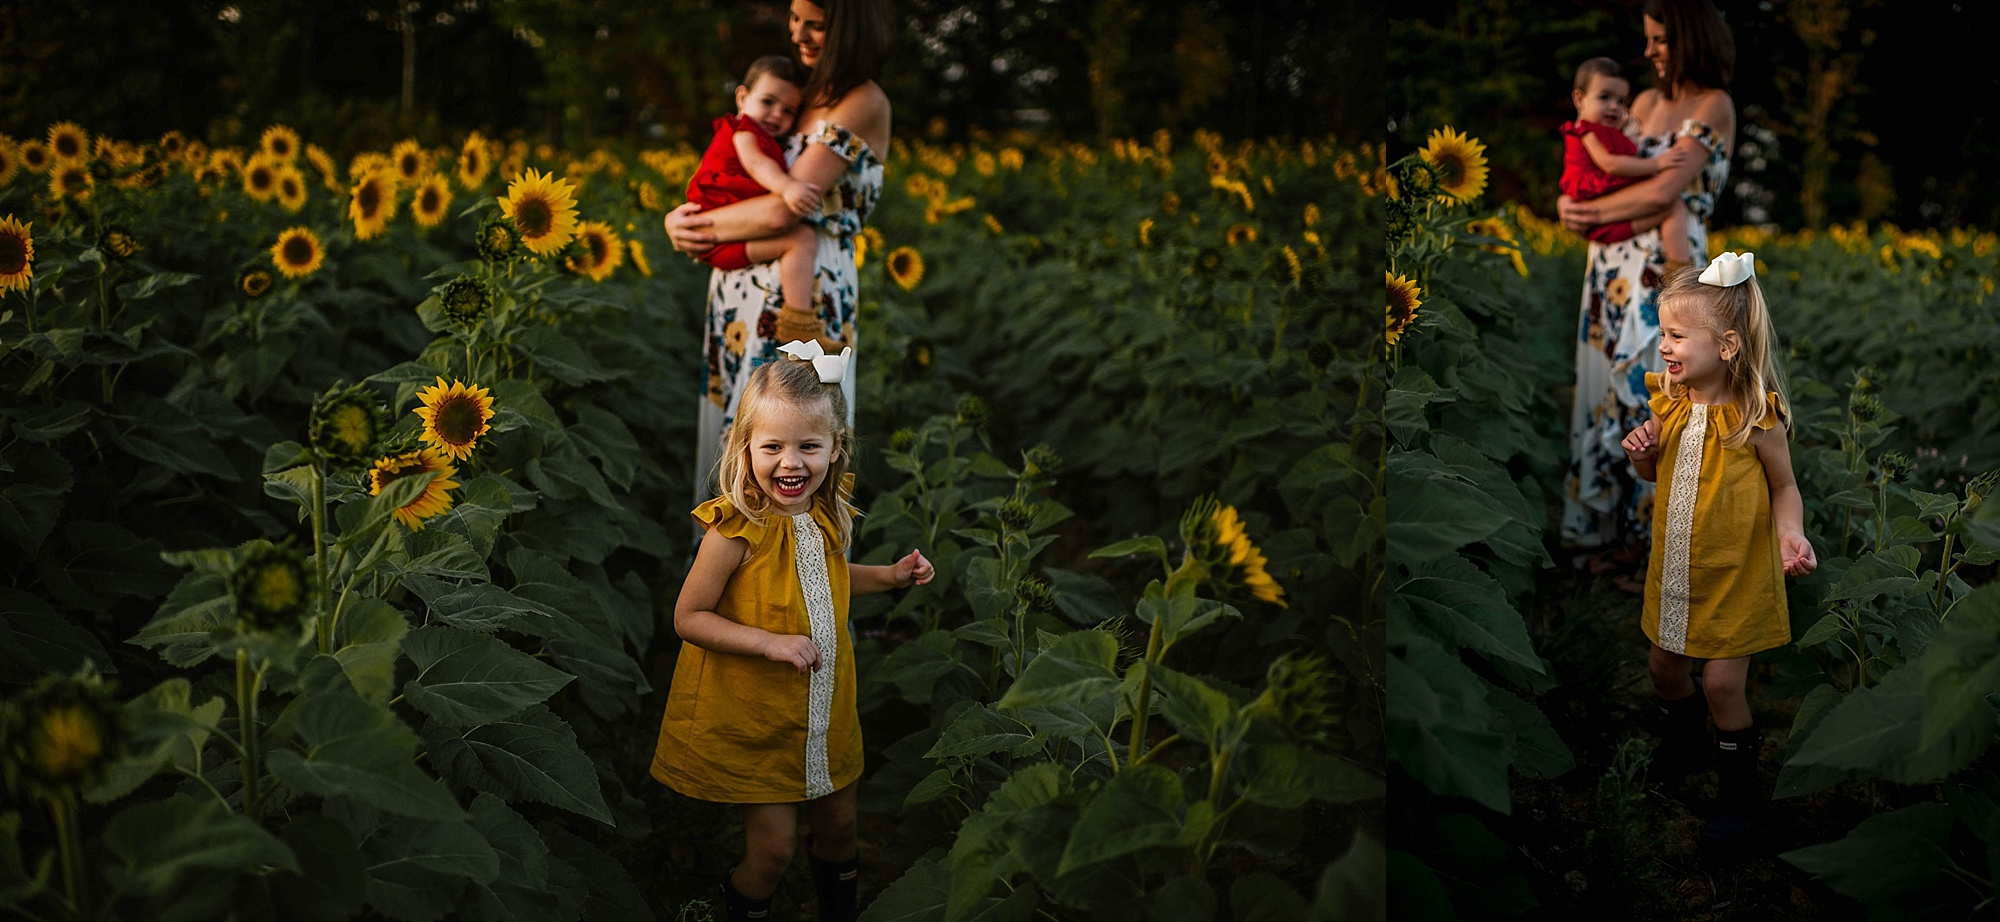 lauren-grayson-photography-cleveland-ohio-photographer-sunflower-fields-sunset-golden-hour-photo-shoot-mommy-and-me-family-child-photographer_0564.jpg